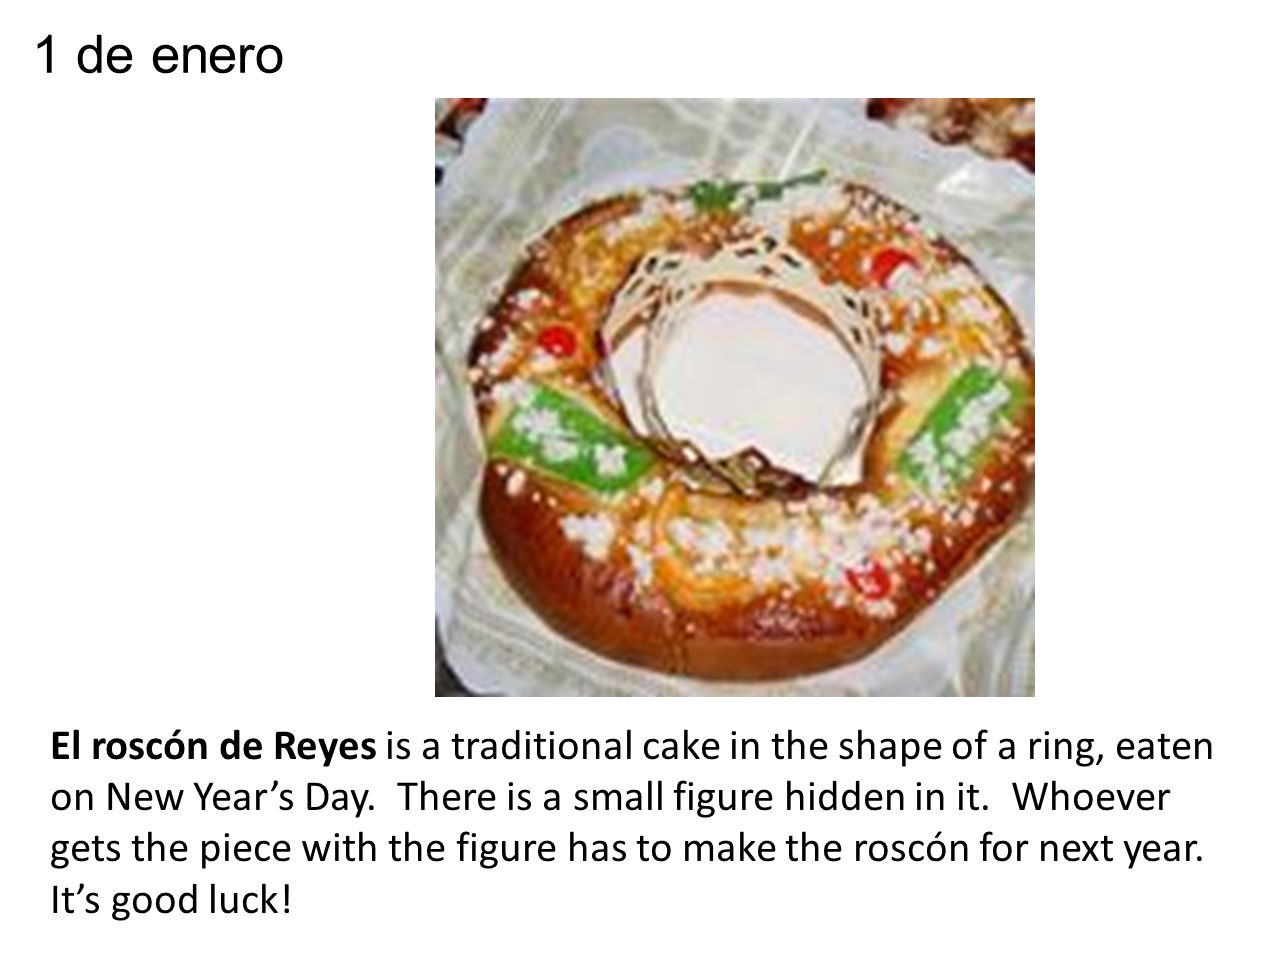 El roscón de Reyes is a traditional cake in the shape of a ring, eaten on New Year's Day.